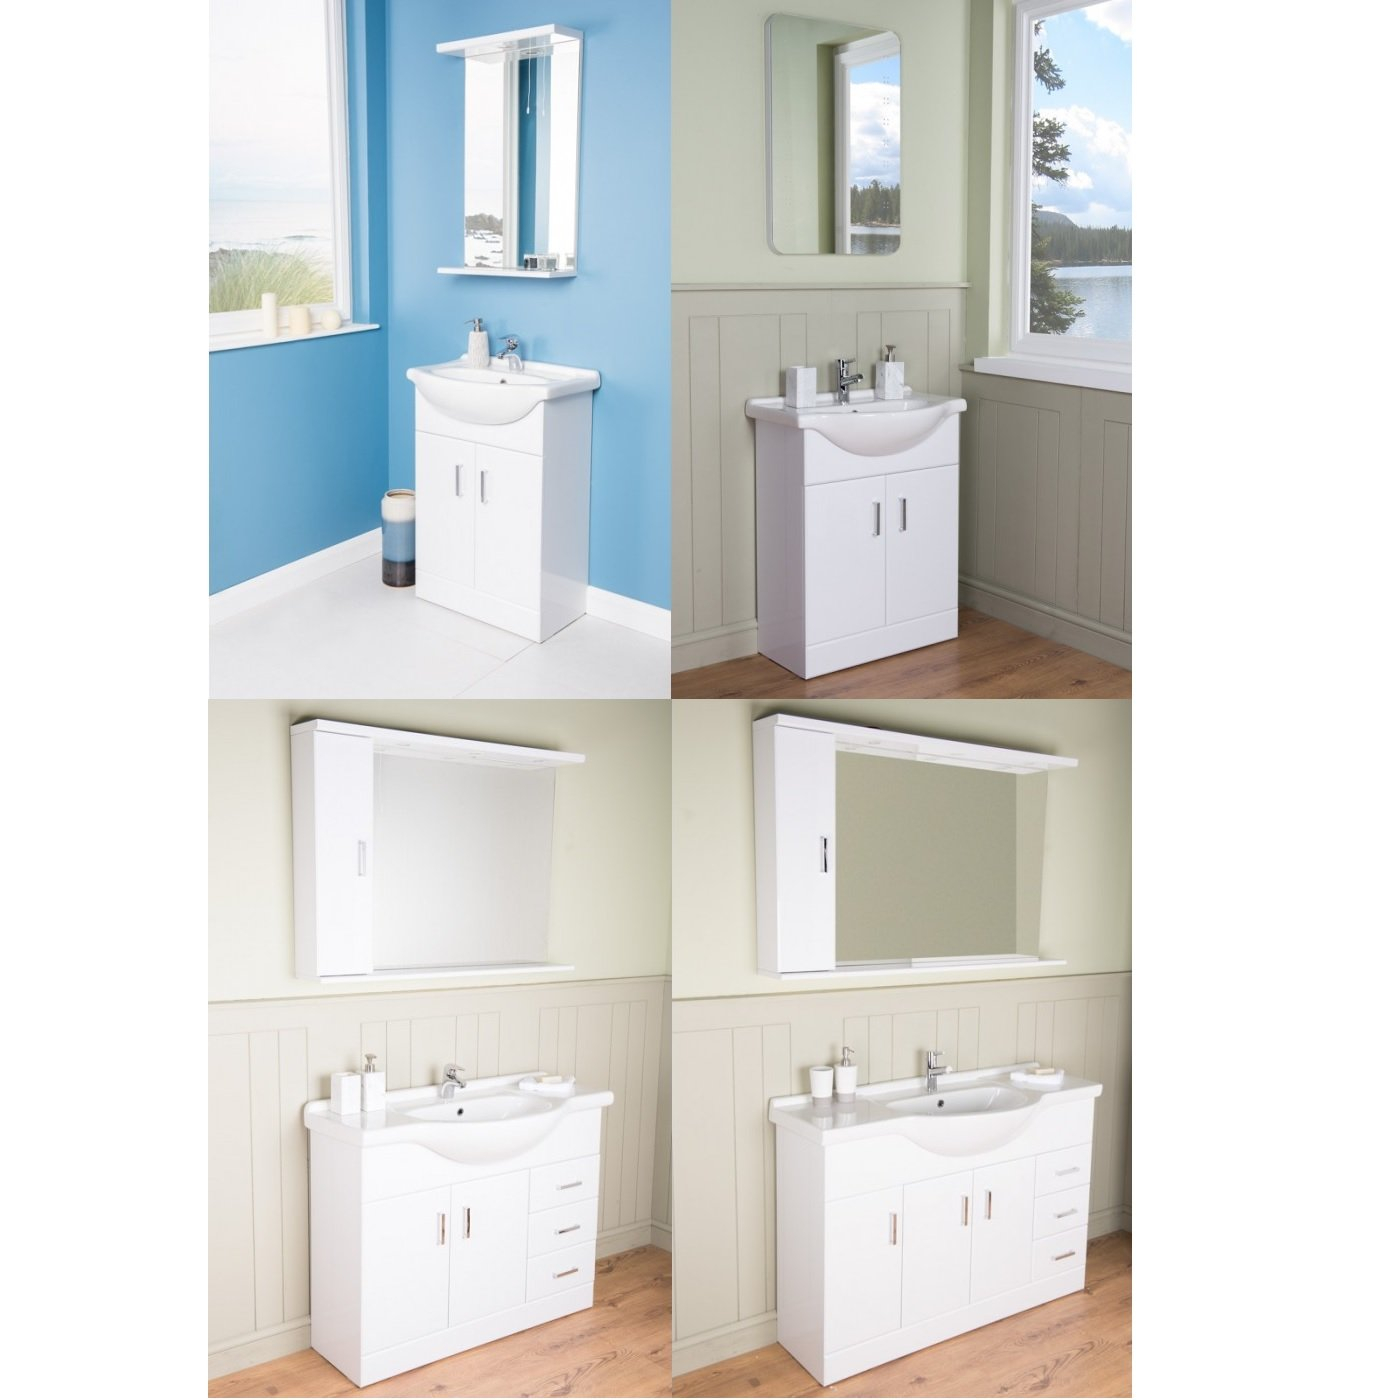 about new modern gloss white bathroom vanity unit cabinet basin sink